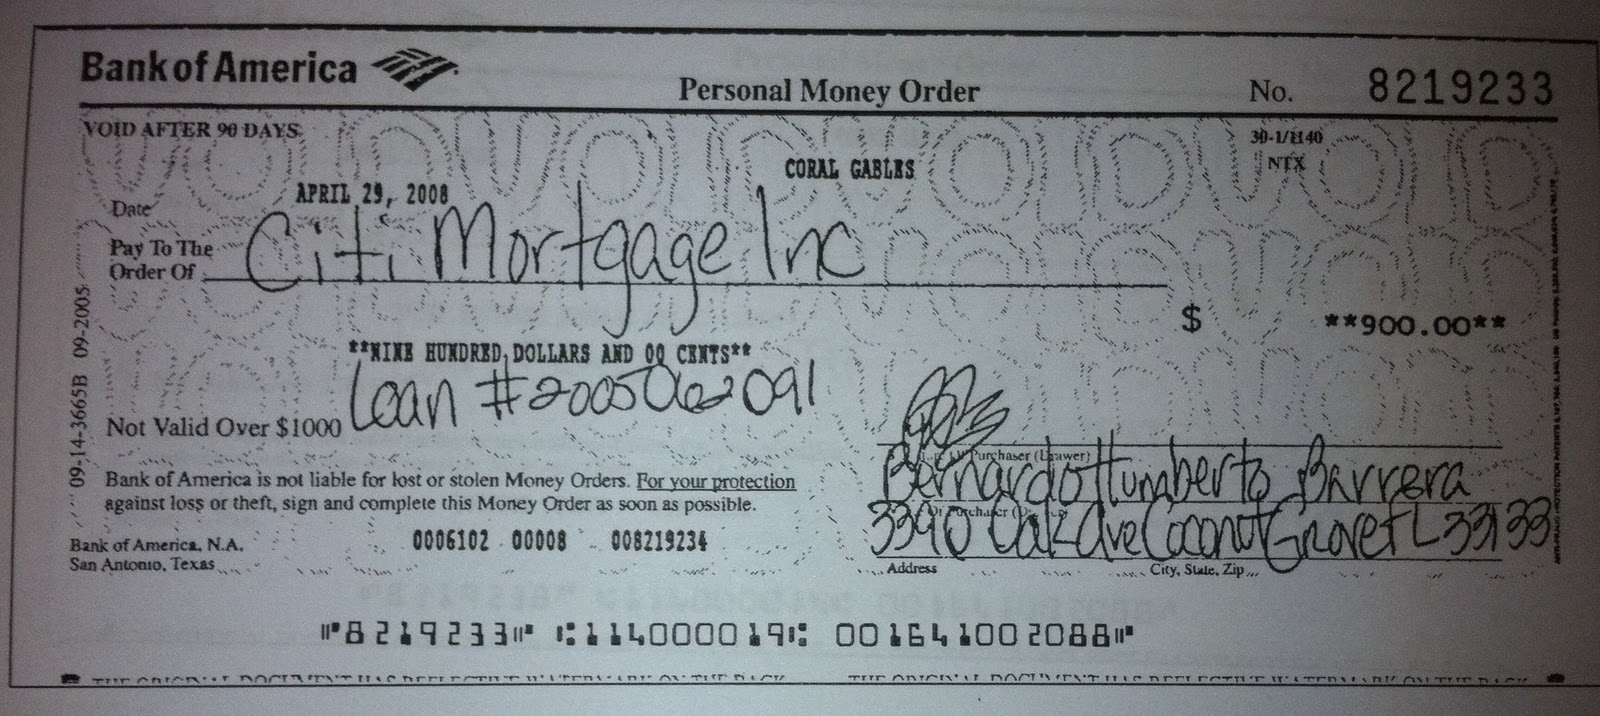 Those Three Checks Total $2,900 Which Just Happens To Be The Amount Of The  Mortgage Payment